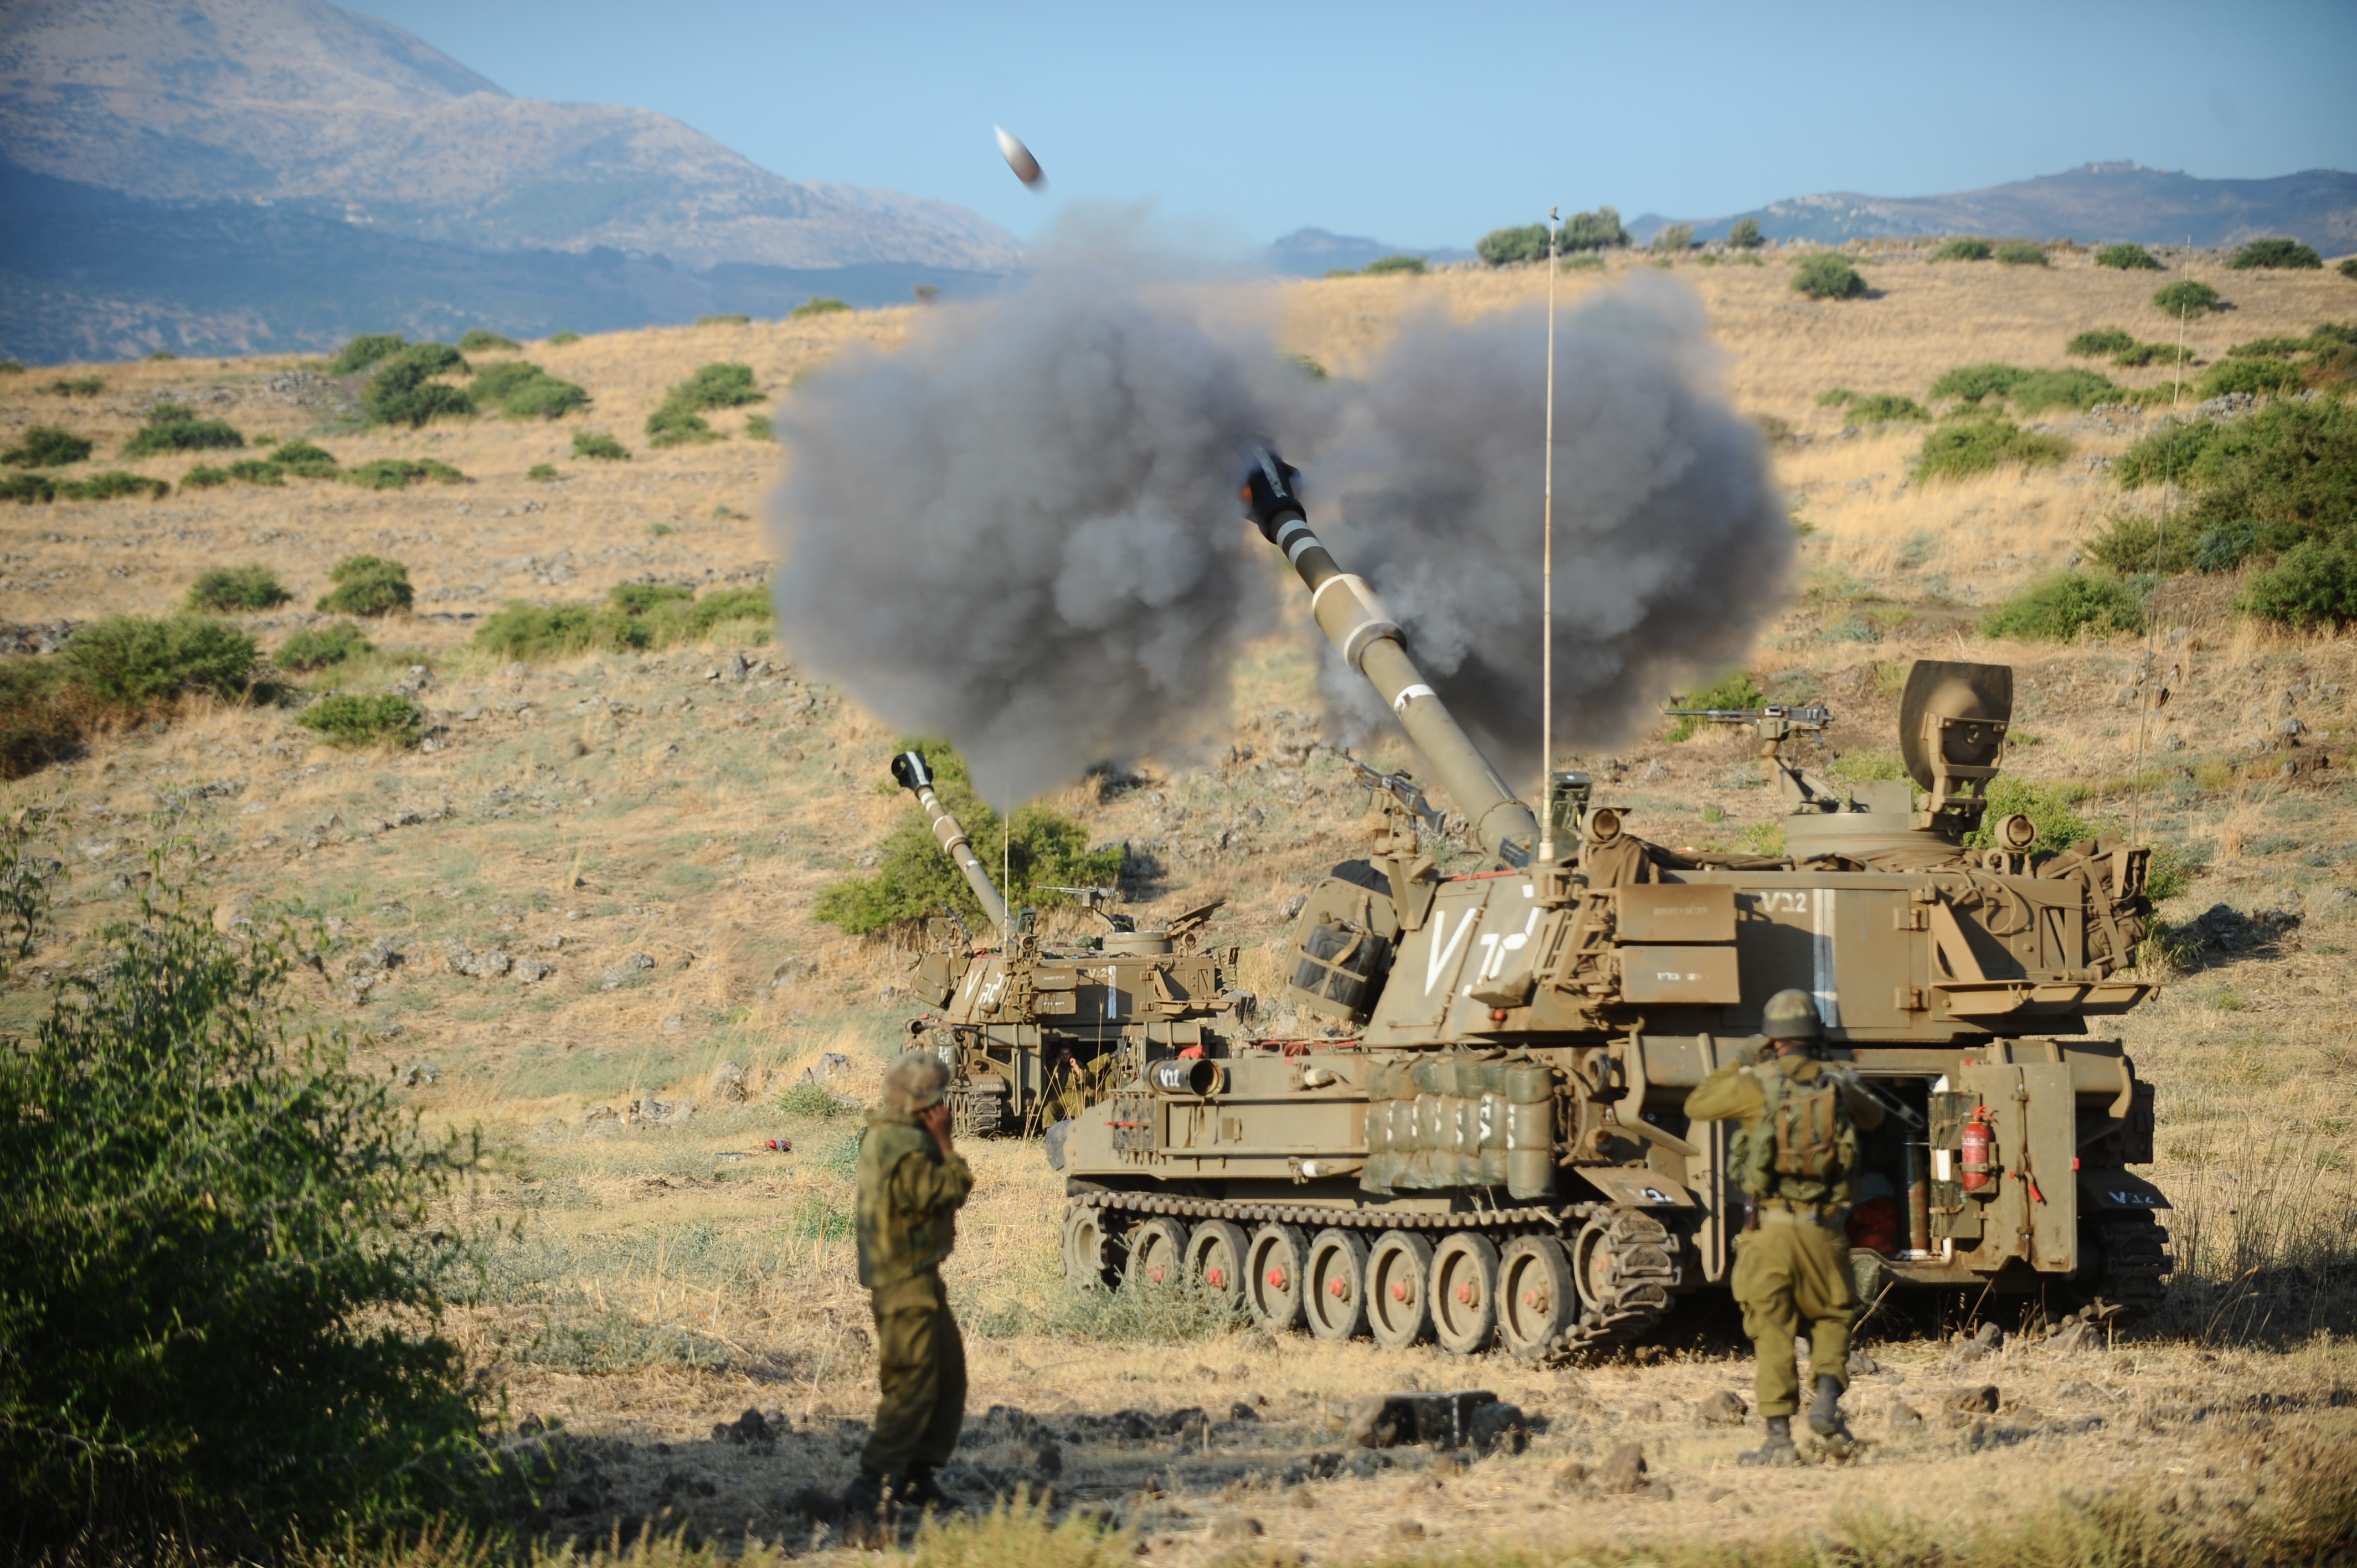 Artillery Corps Fires Practice Cannon3.jpg